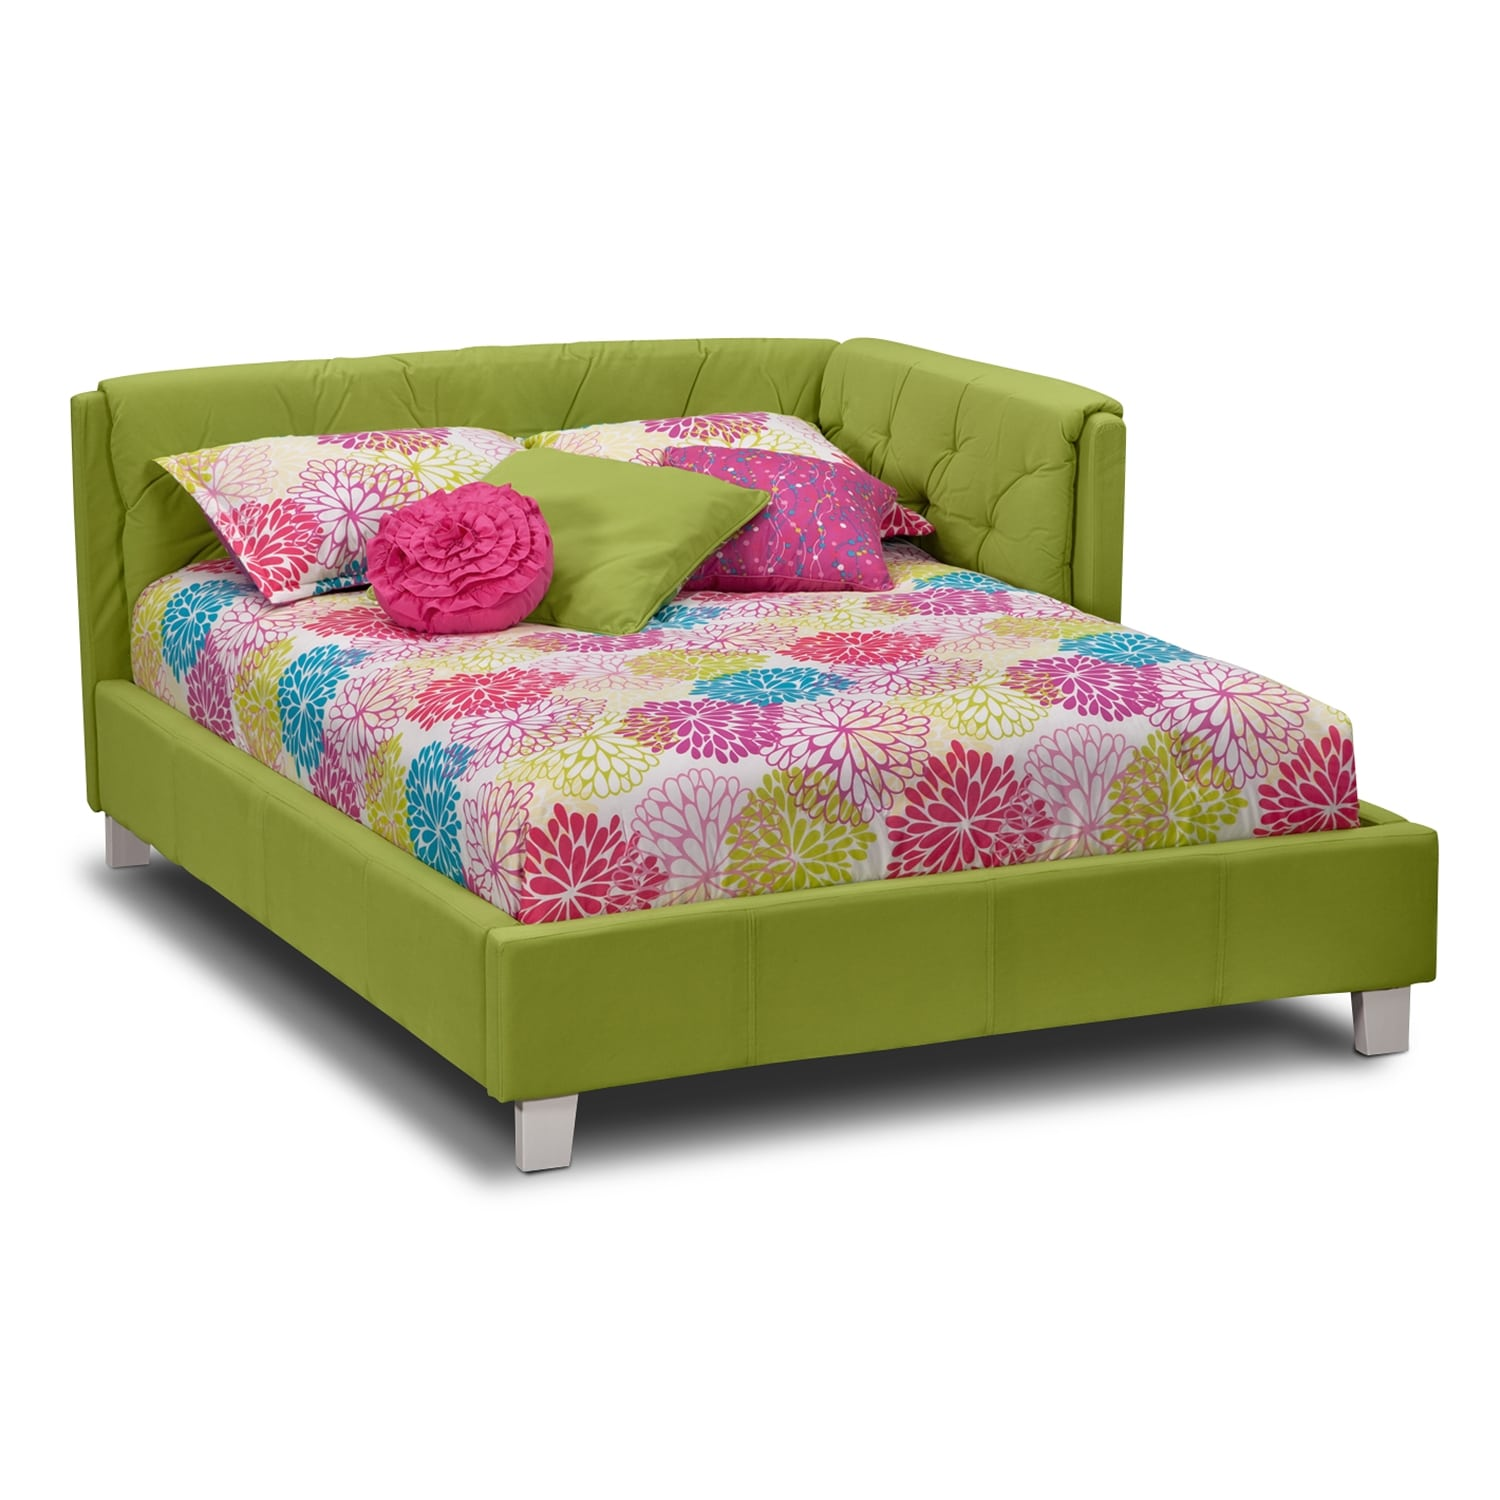 Kids Furniture - Jordan Full Corner Bed - Green